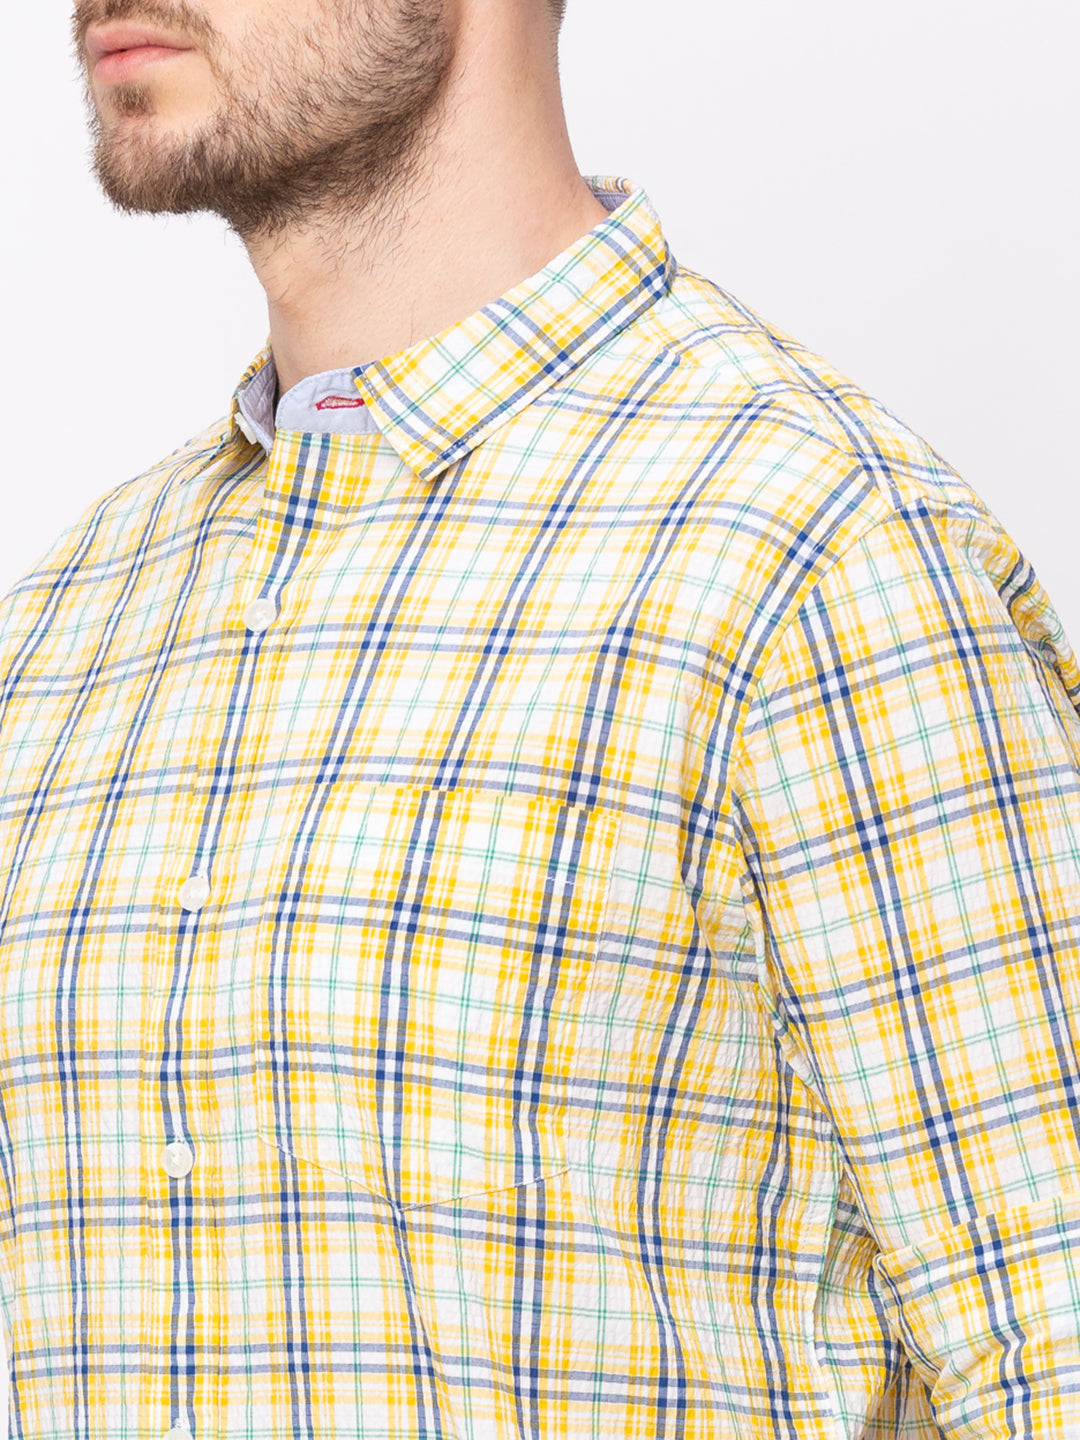 Globus Yellow Checked Shirt-4